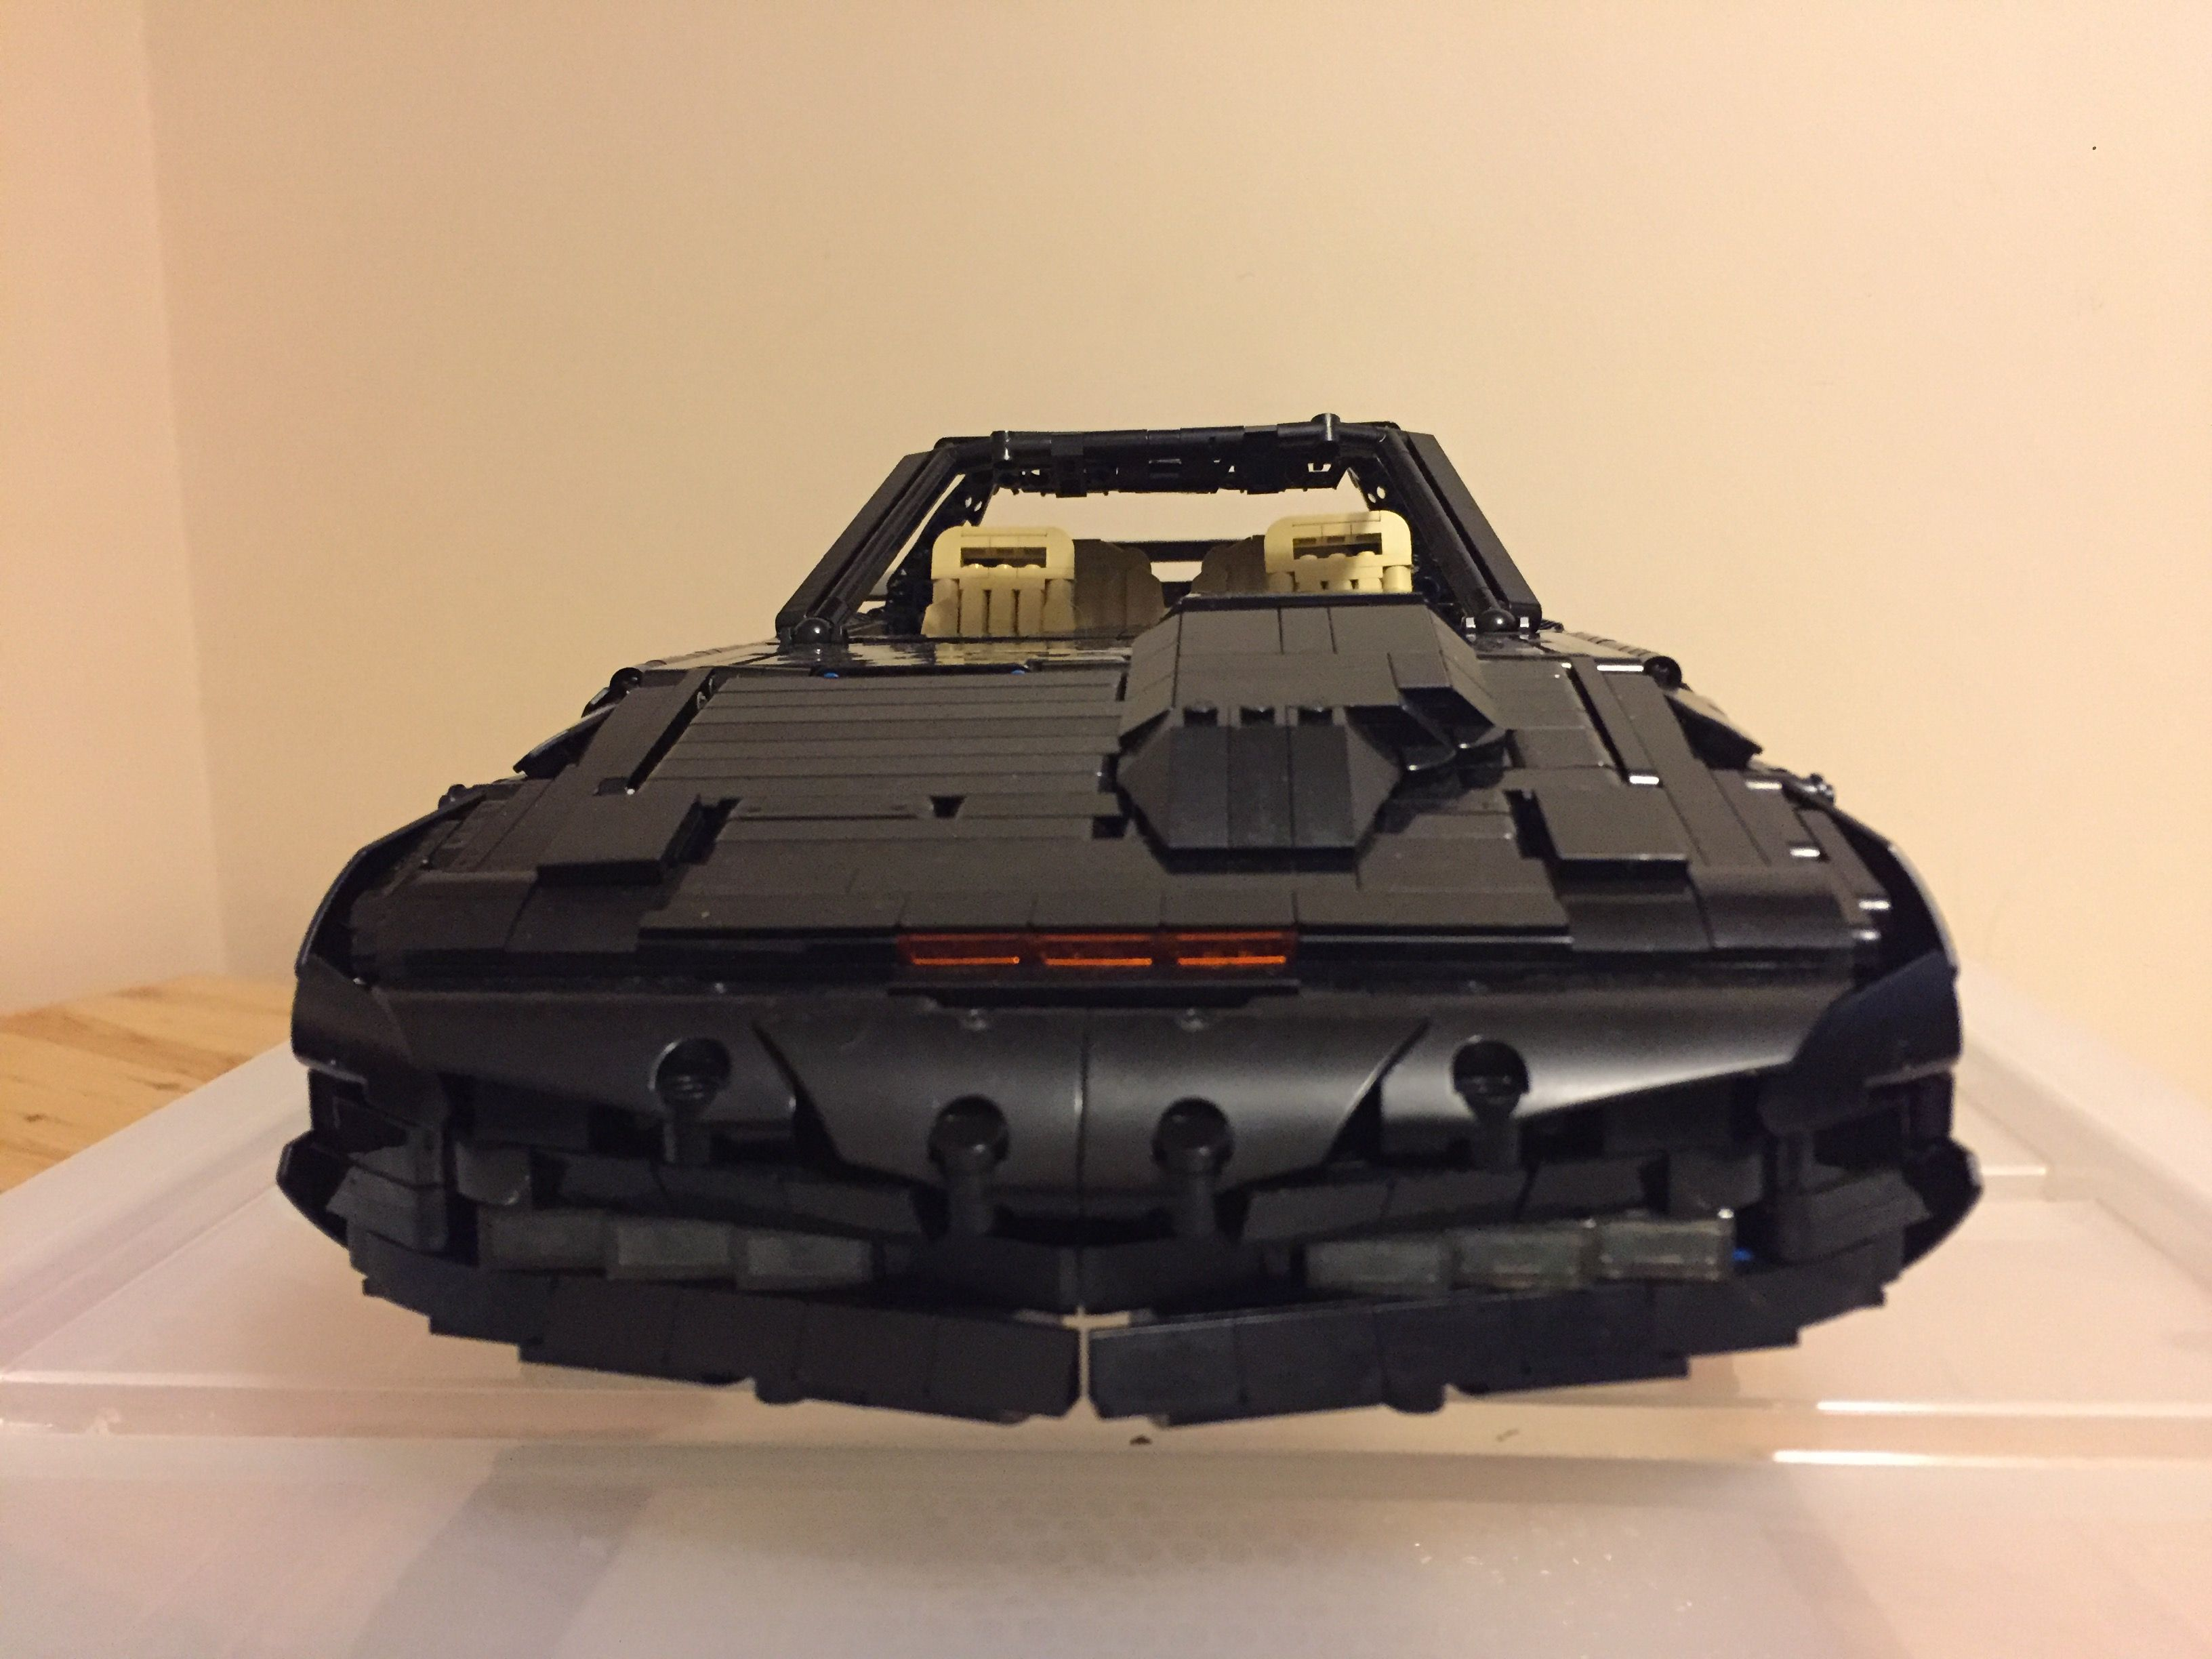 Pin by Darren Thew on Lego Technic MOC Vehicles Lego